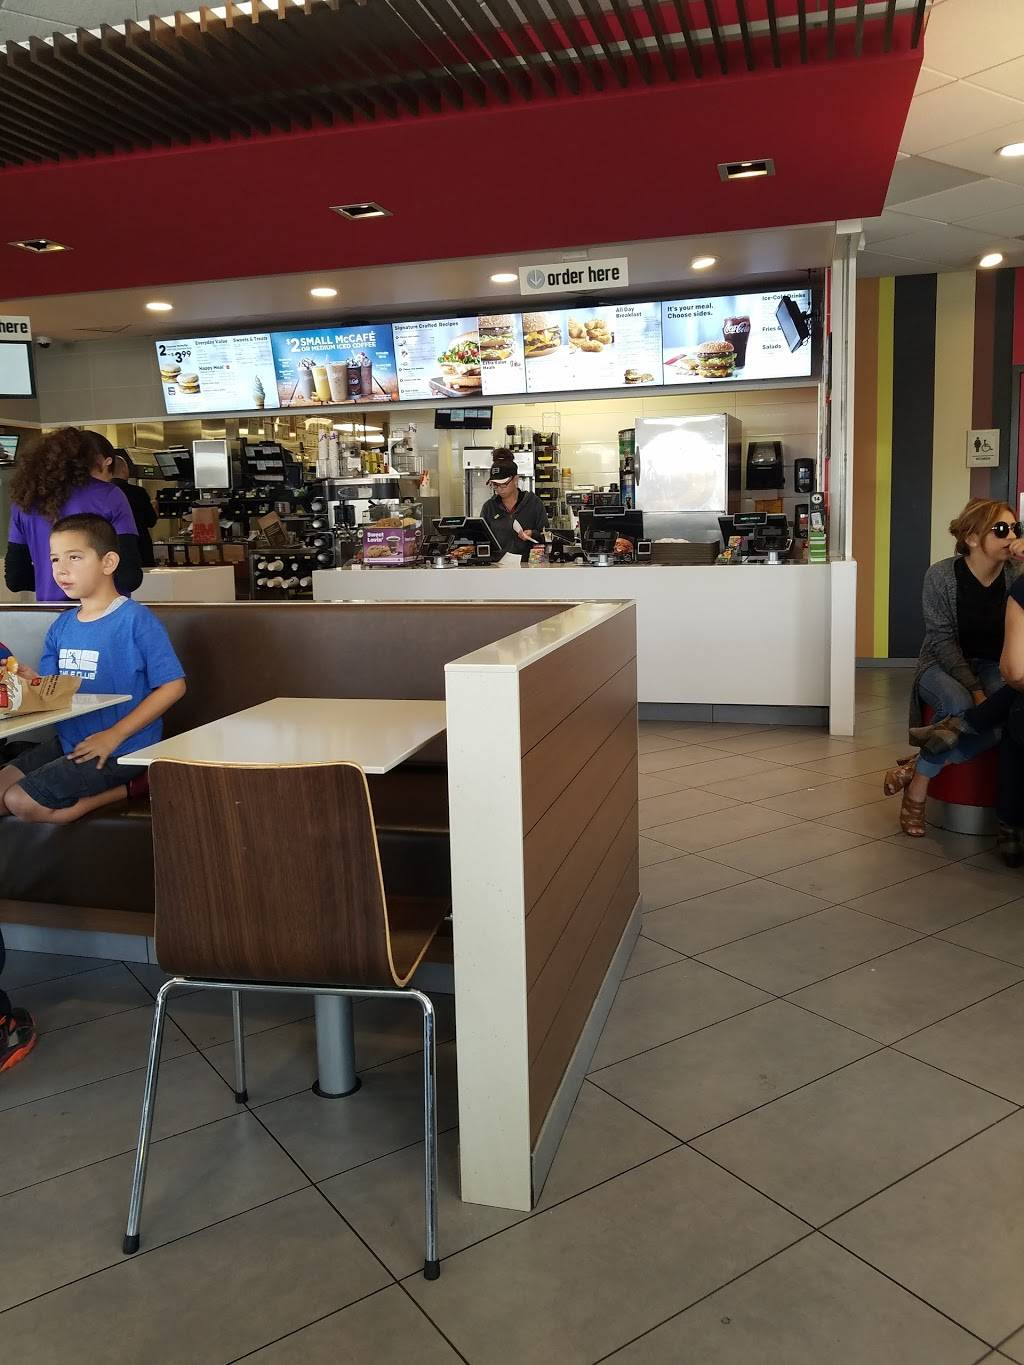 McDonalds | cafe | 10721 Atlantic Ave, Lynwood, CA 90262, USA | 3106325255 OR +1 310-632-5255